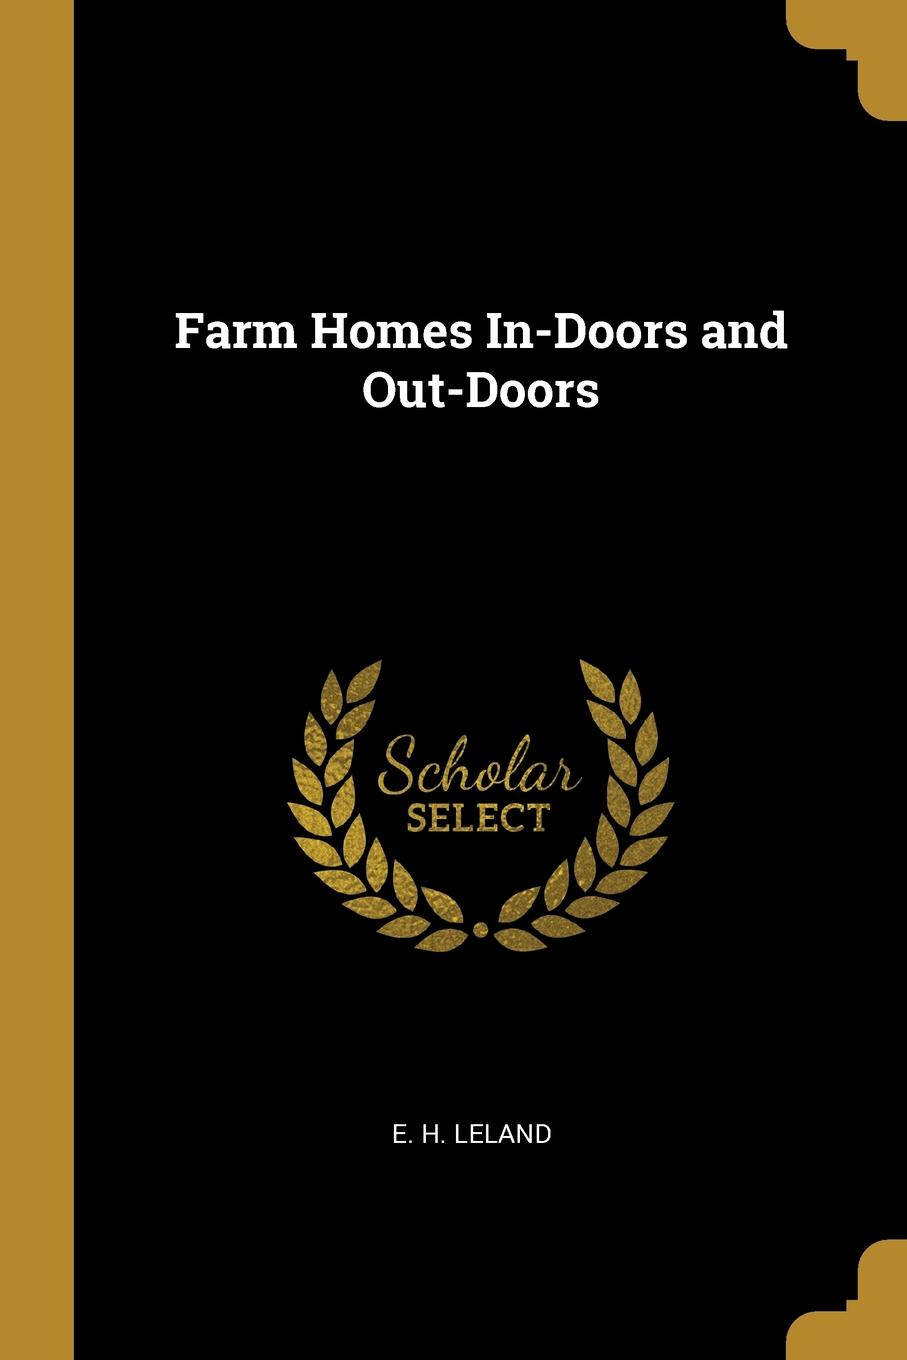 E. H. Leland. Farm Homes In-Doors and Out-Doors